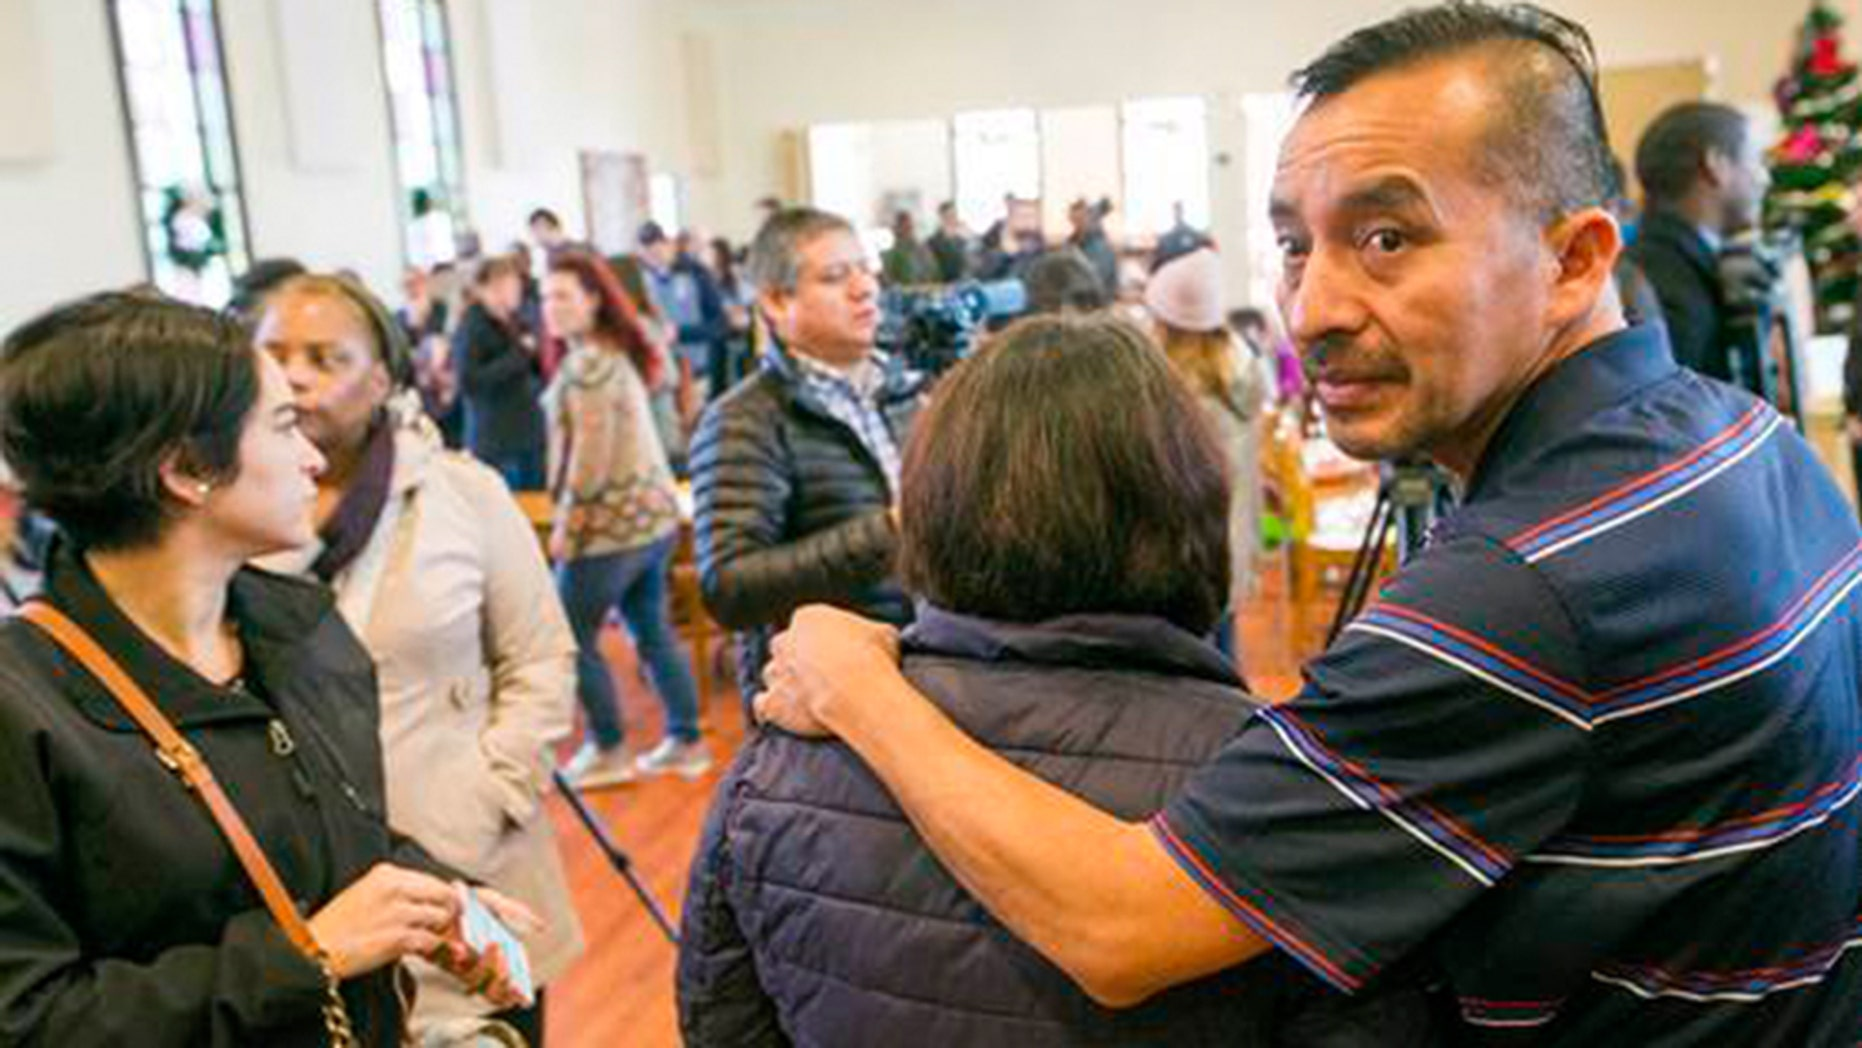 In this Dec. 13, 2017, photo Samuel Oliver-Bruno glances back before preparing for interviews after the press conference held at CityWell United Methodist Church in Durham, N.C. Oliver-Rruno, who sought refuge from deportation at the church for 11 months was arrested Friday after arriving at an appointment with immigration officials. (Casey Toth/The Charlotte Observer via AP)